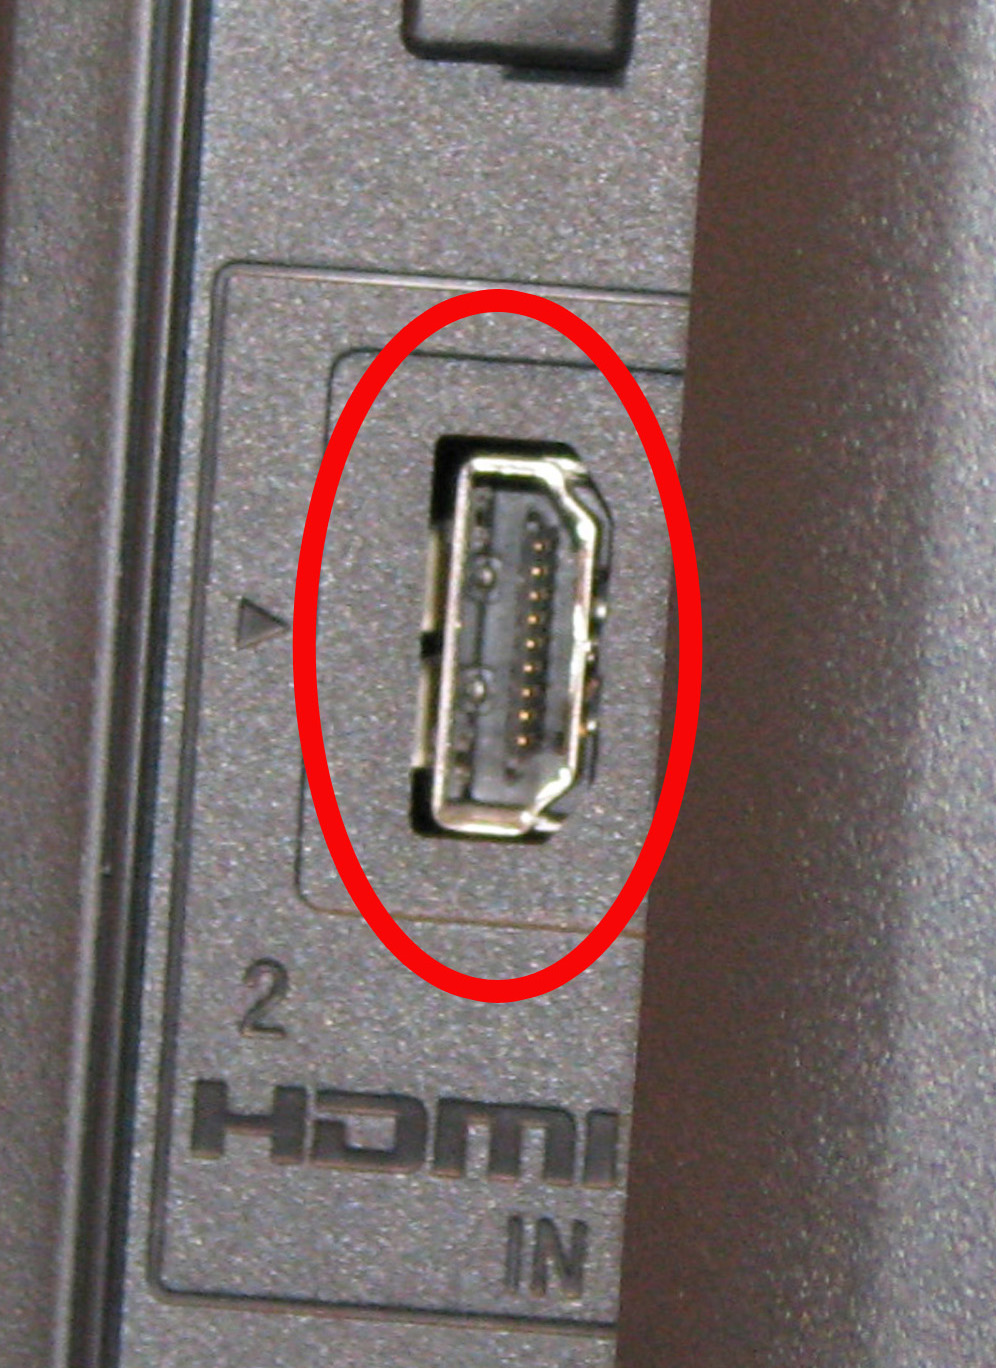 How to Use an HDMI to DVI Cable